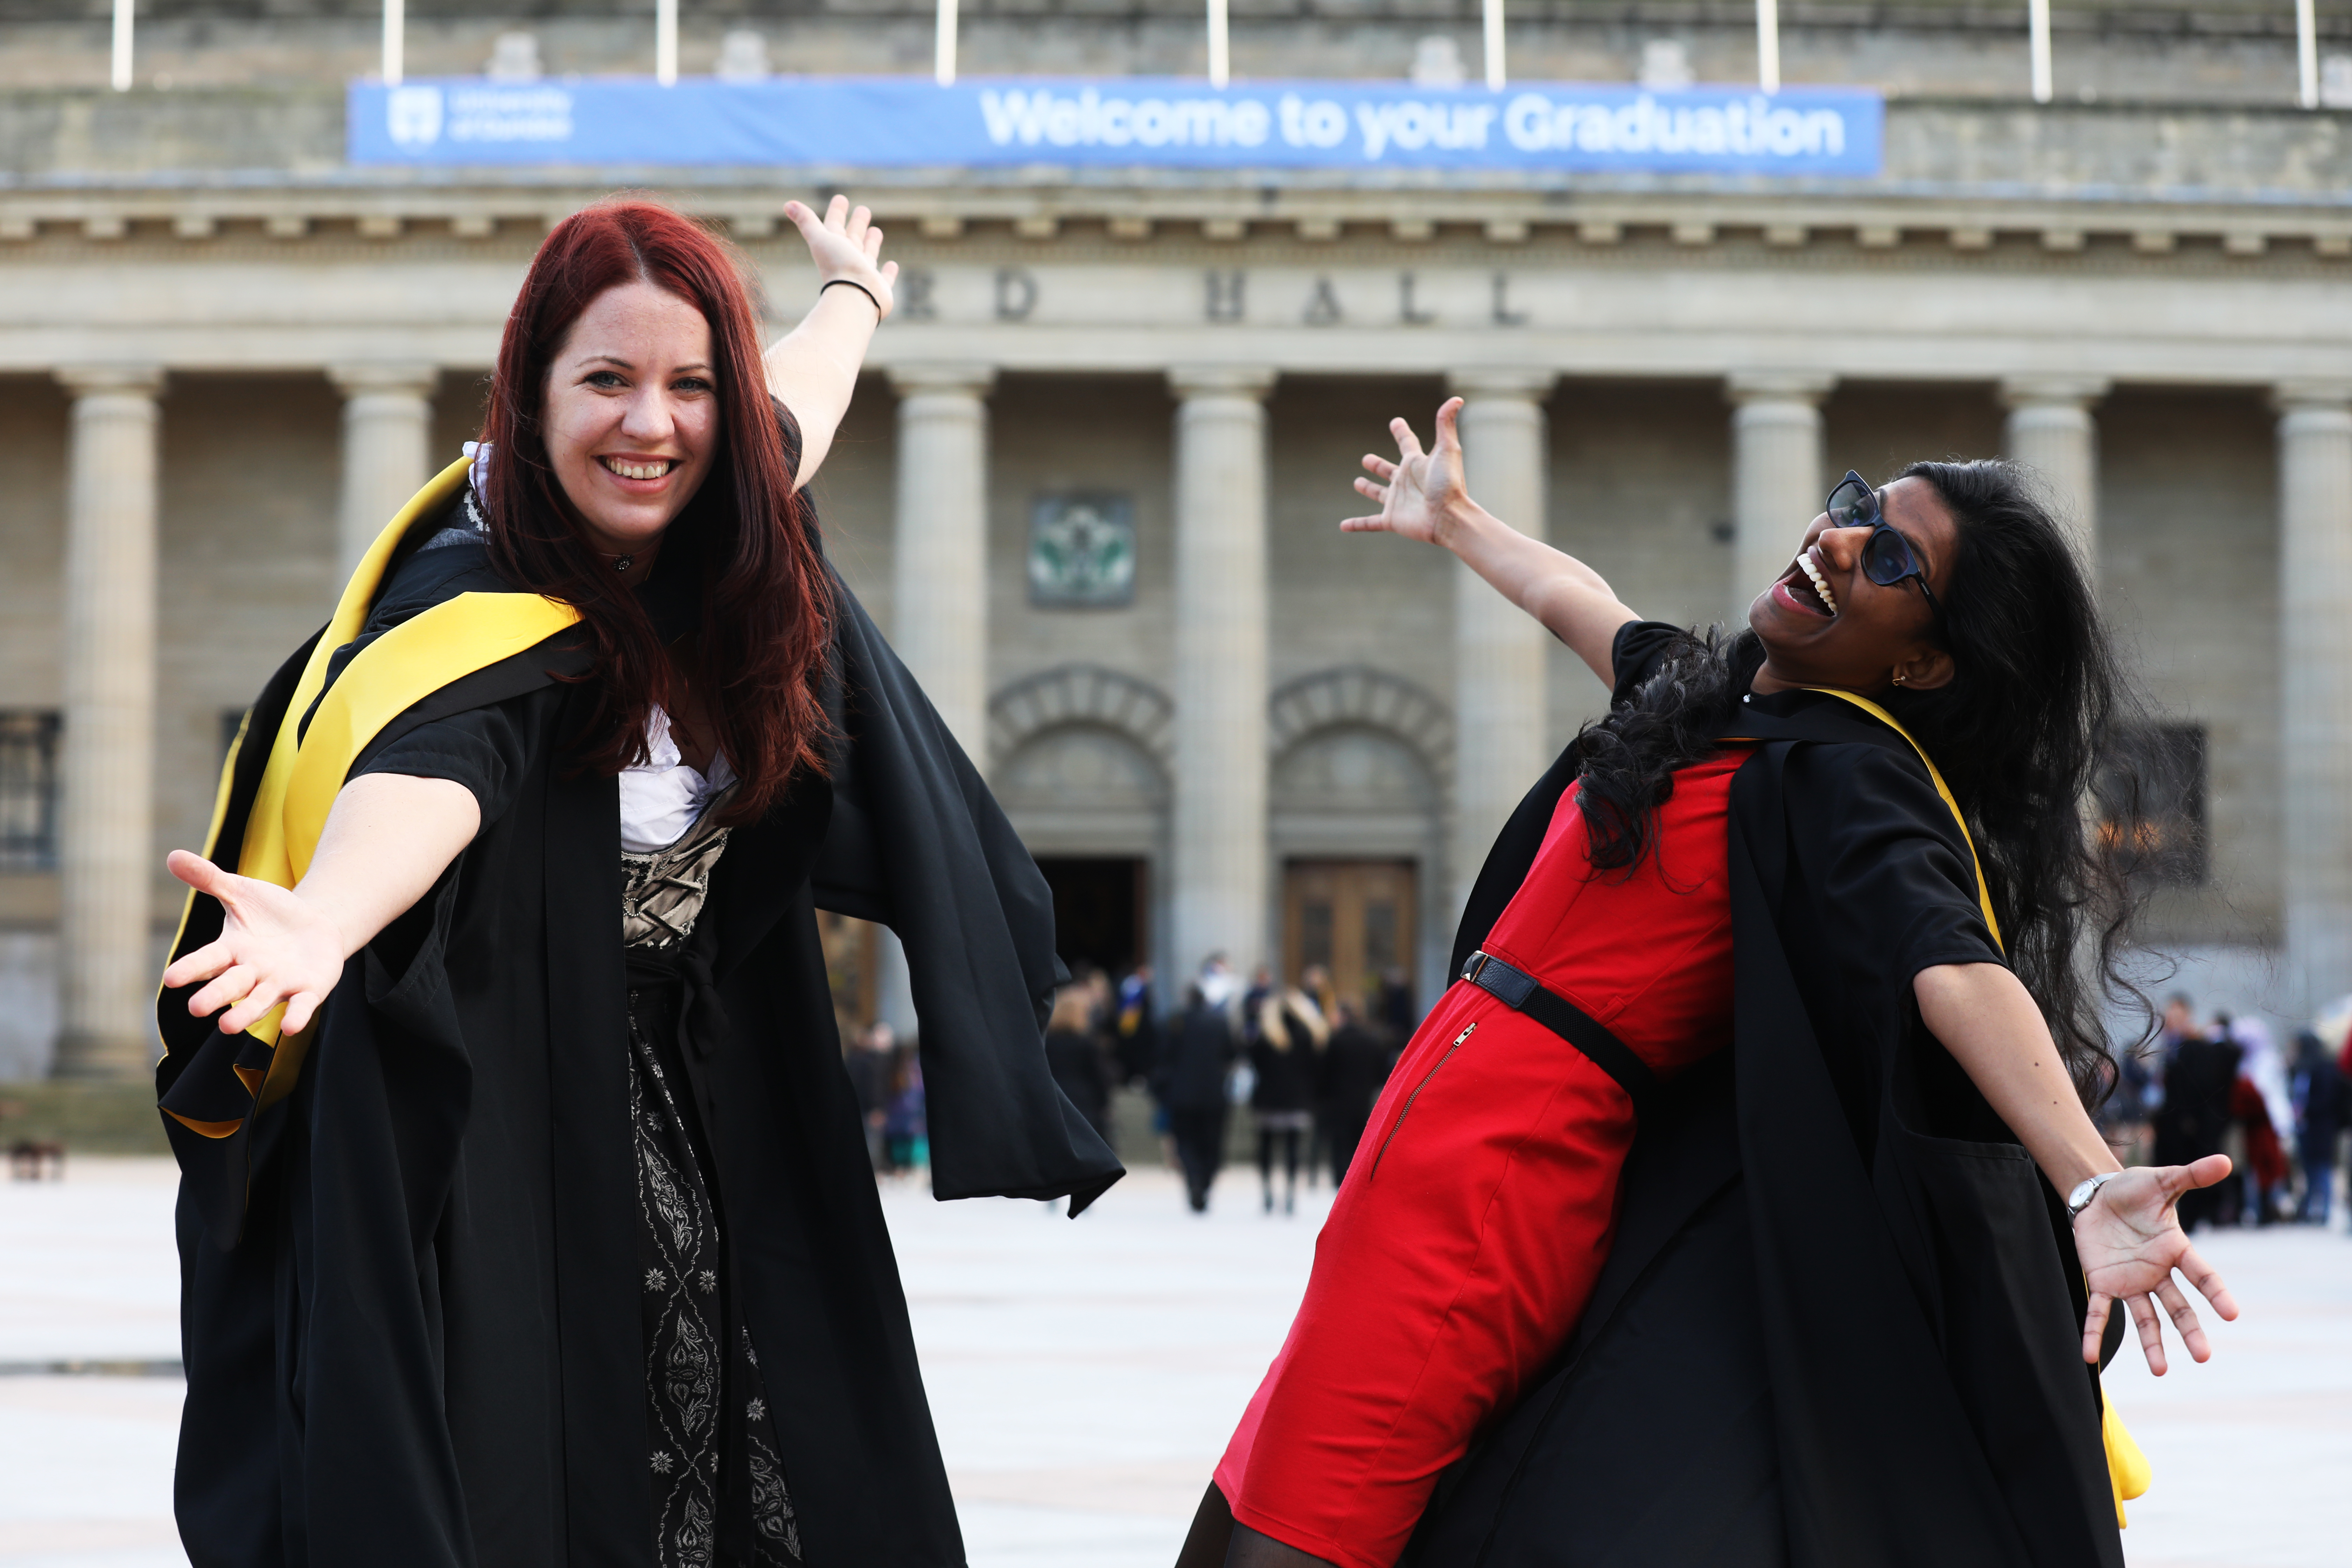 Birgit Mischak, 29 graduating with a Masters in International Buisness and Raveena Meembat, 25, graduates with a Masters in Forensics, Anthropologie and Archaeology.